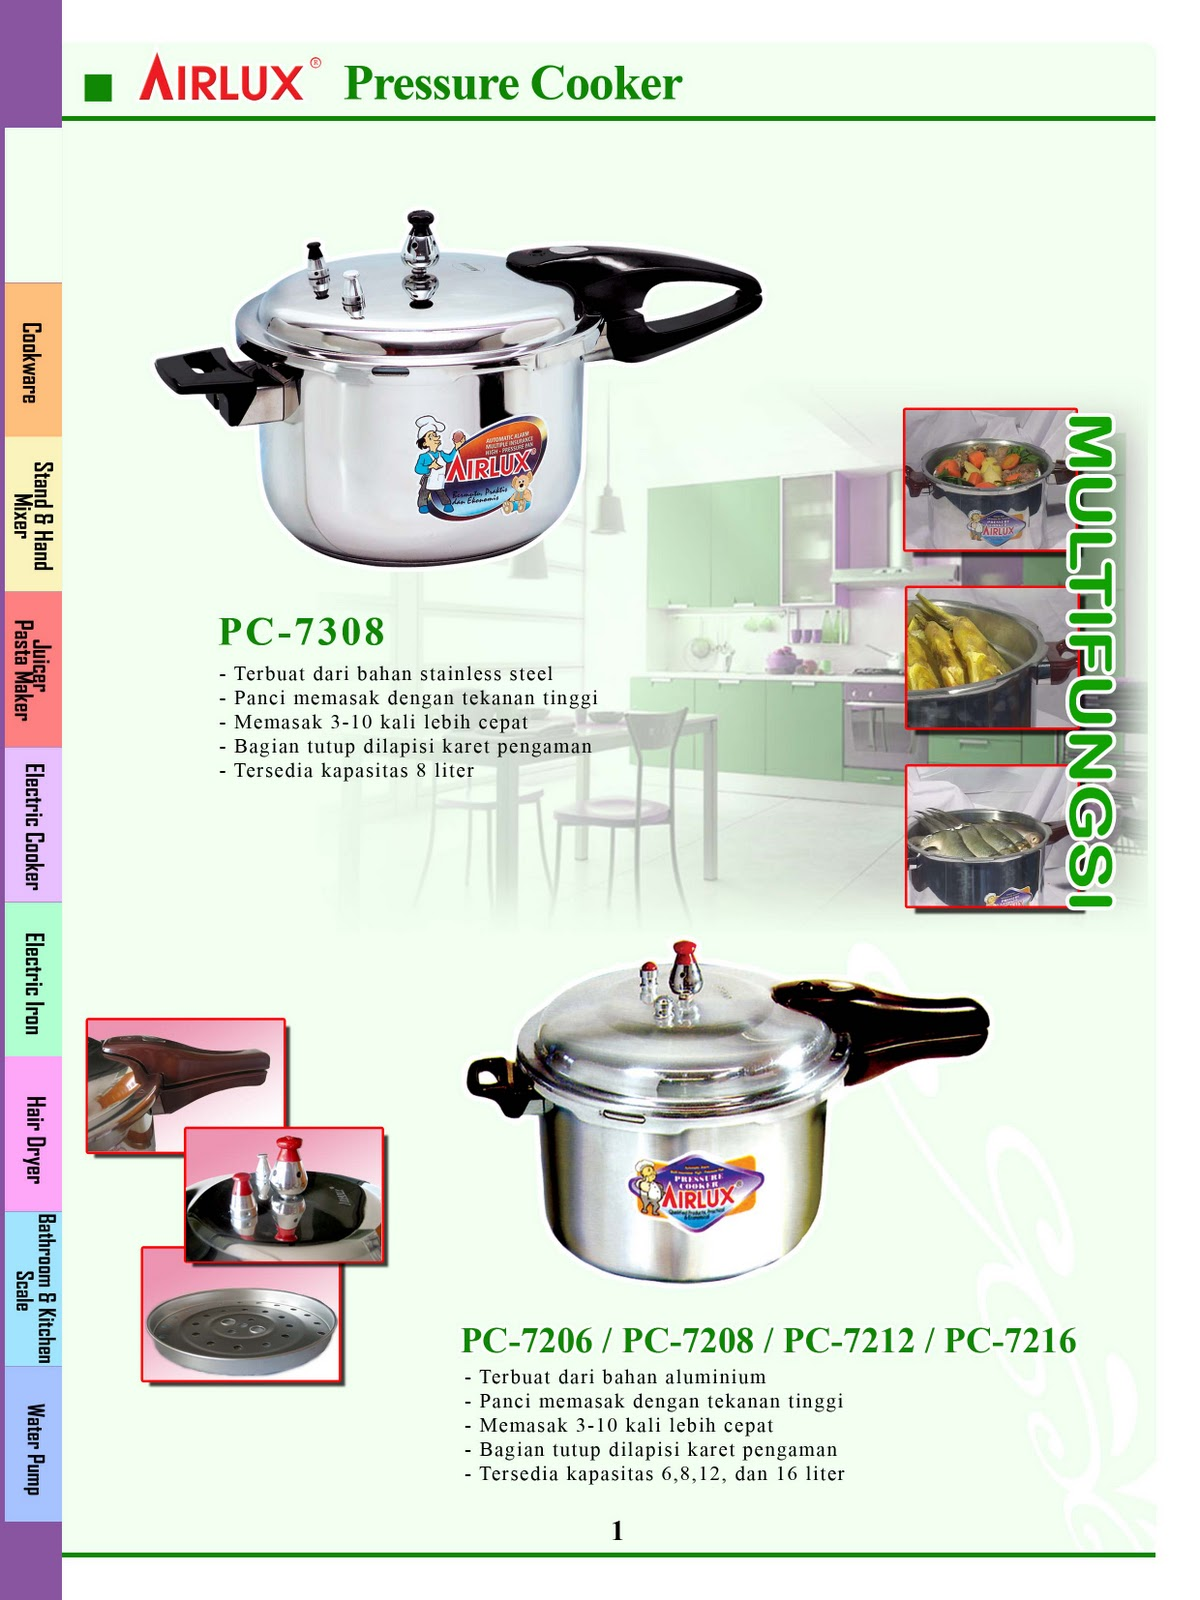 Airlux Stainless Steel Pressure Cooker Pc 7308 Daftar Update Harga Carbon Cookware Bc 8105 Hijau